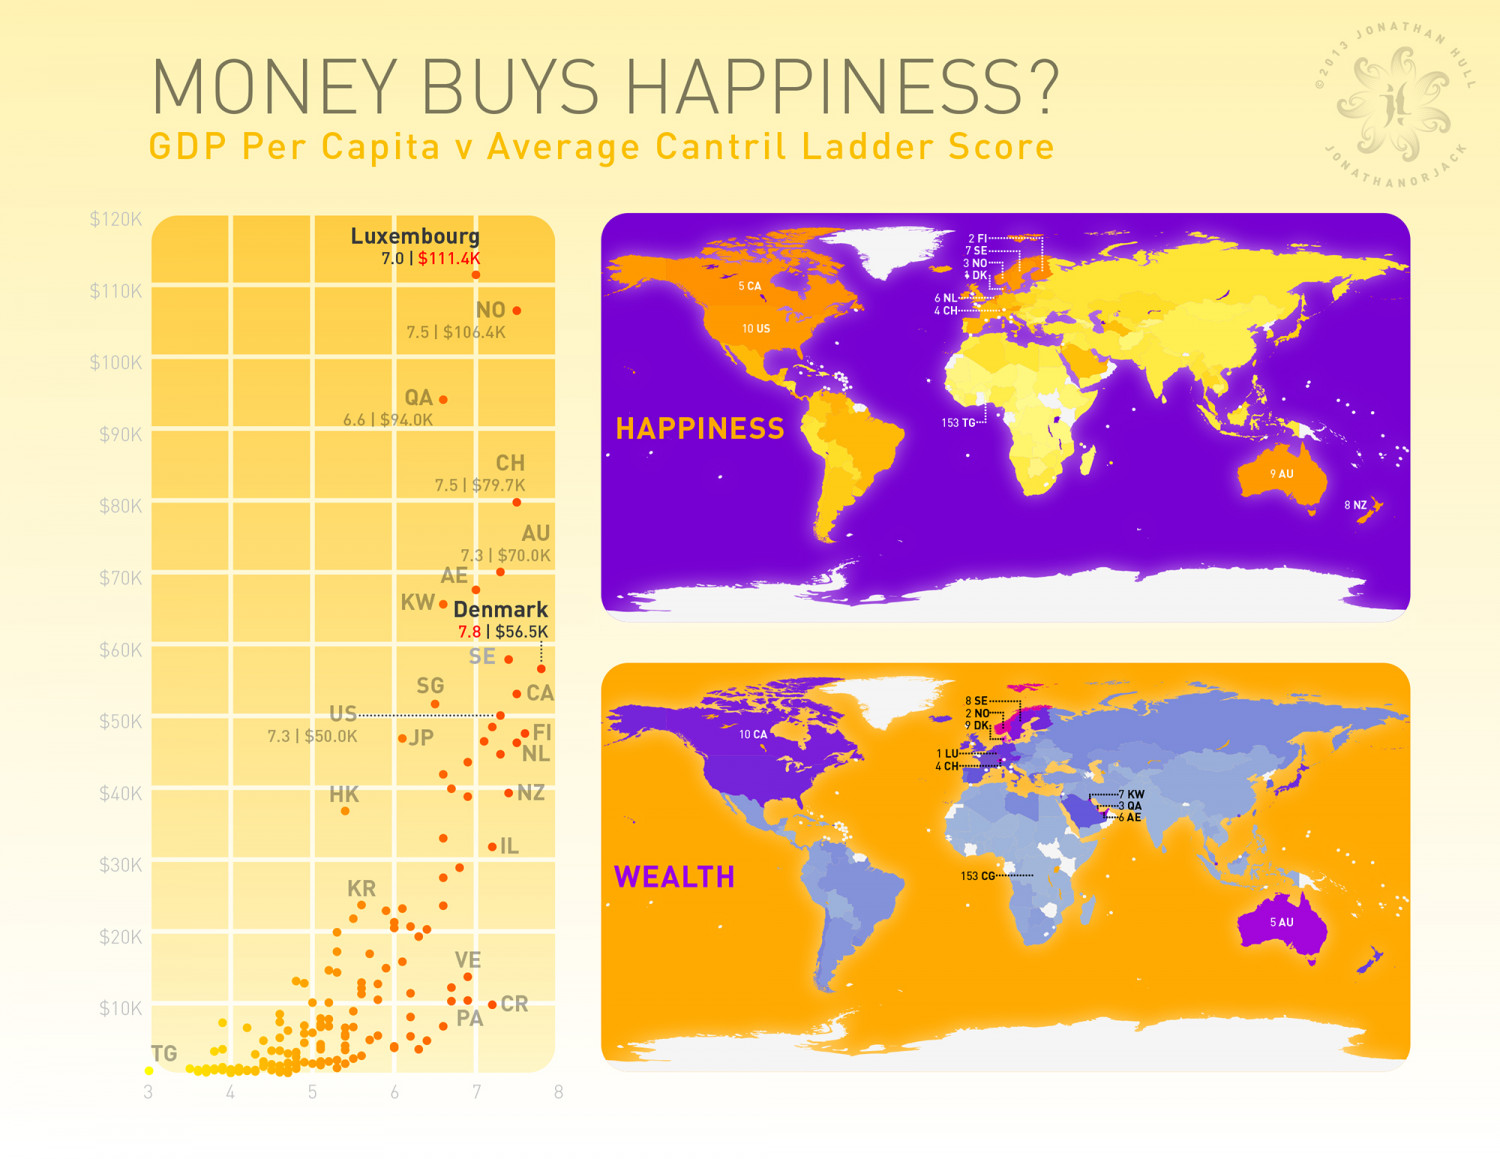 Money Buys Happiness Infographic